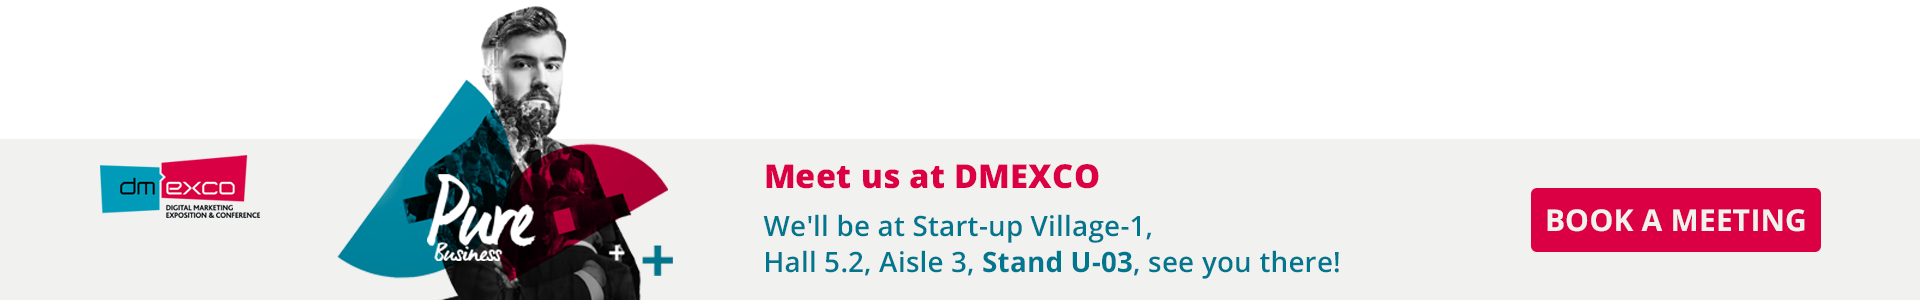 Attending DMEXCO?